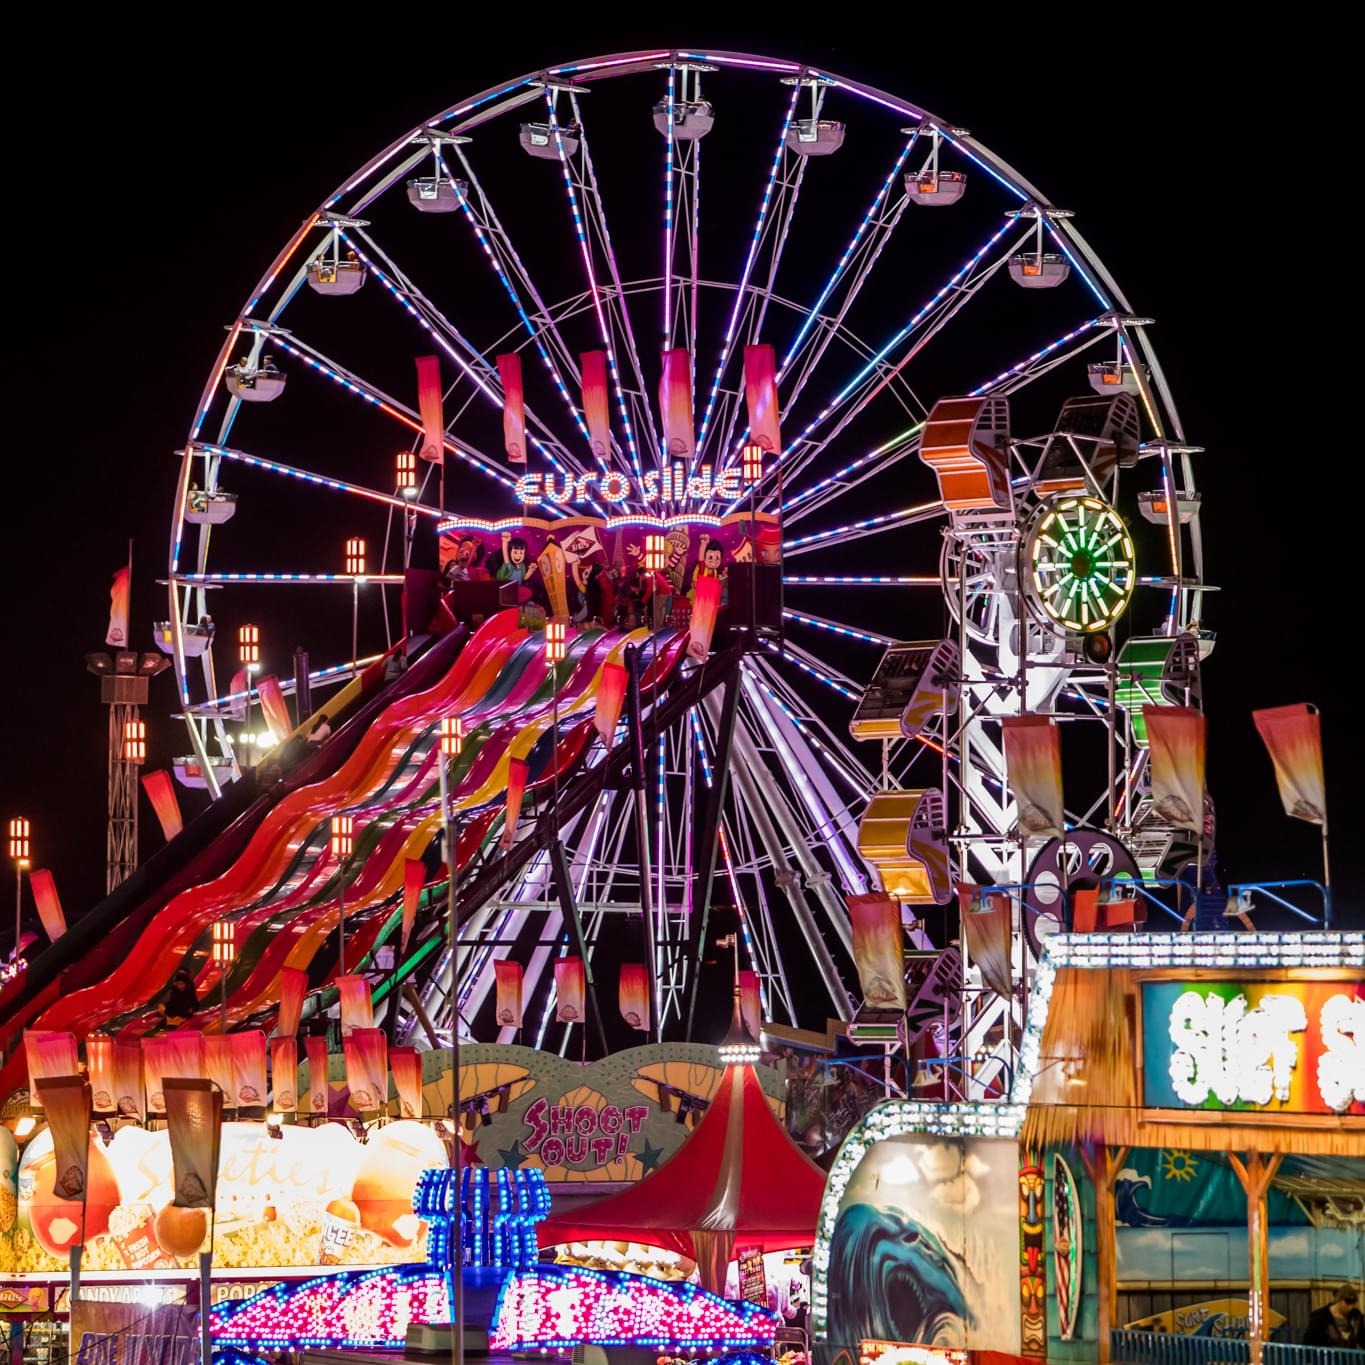 4/18 – 4/28: Pima County Fair